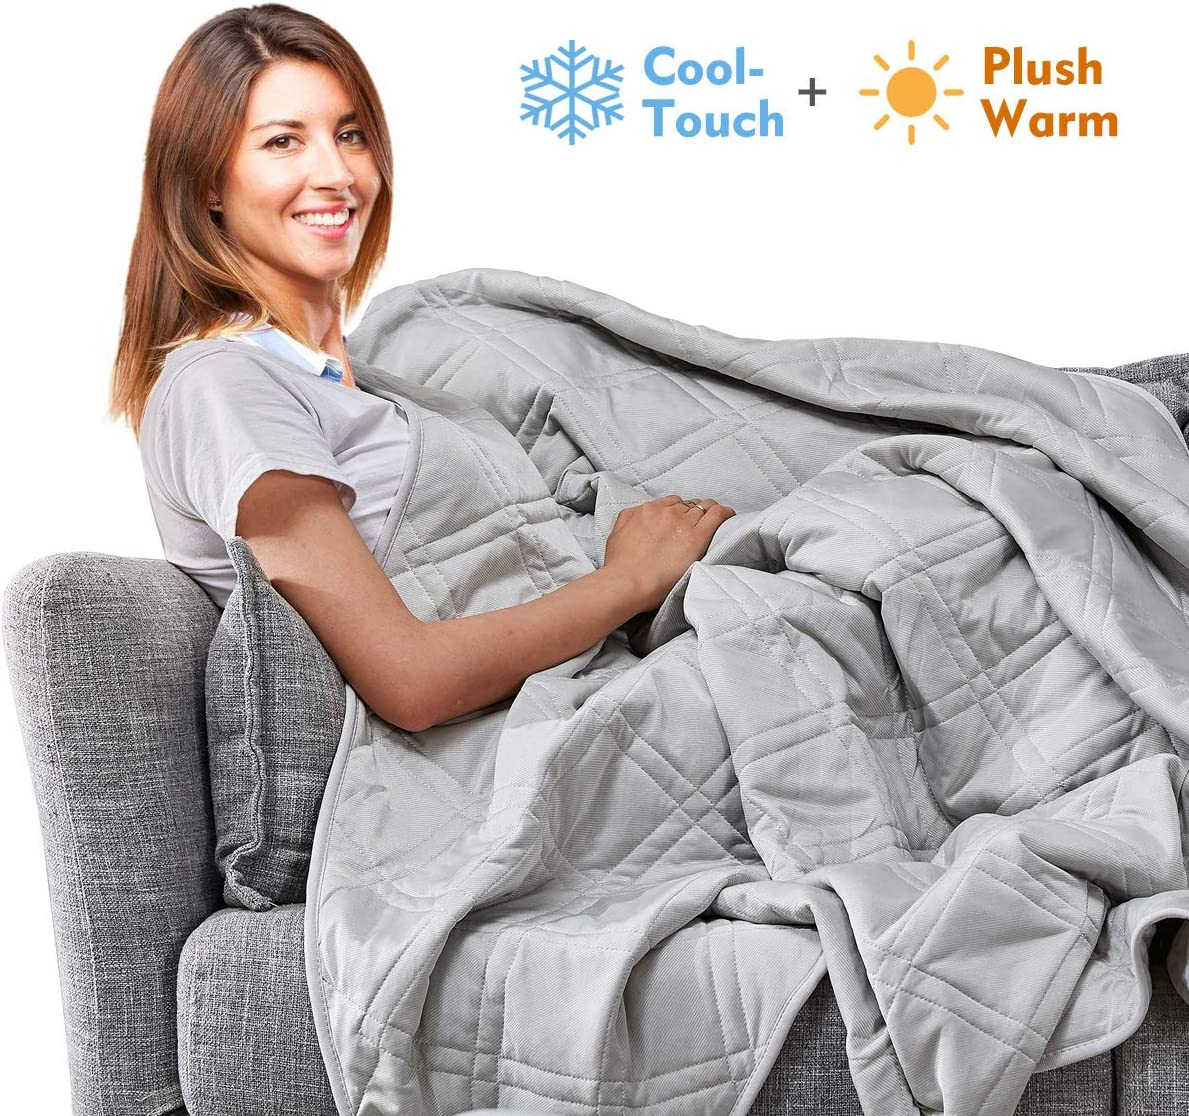 APSMILE Reversible Throw Blanket for Couch, Sofa, Bed - Summer Cool Touch and Plush Warm Quilted 2 in 1 (Queen, Grey/Gray)